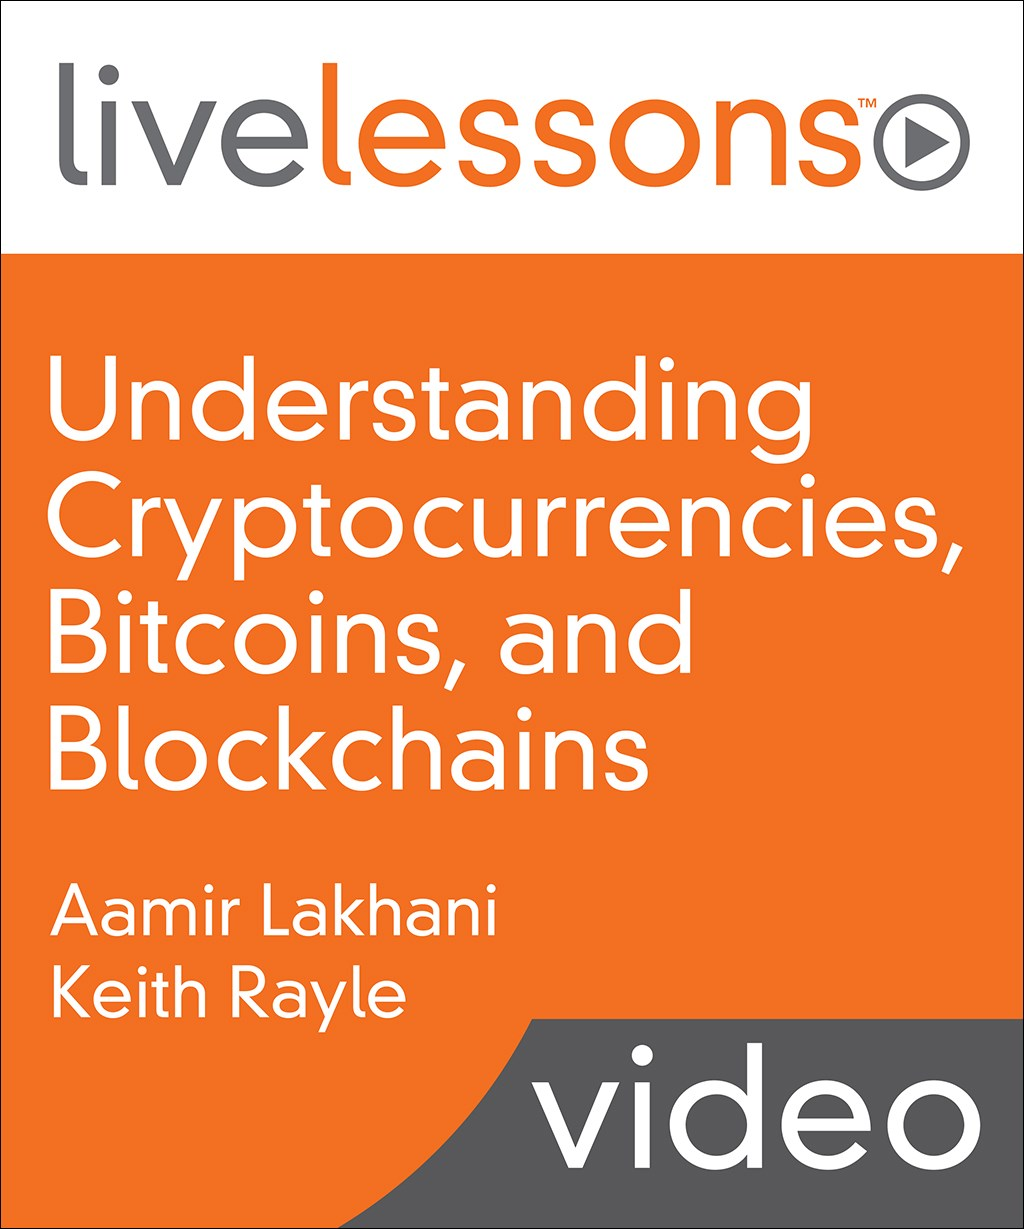 Understanding Crypto Currencies, Bitcoins, and Blockchains LiveLessons